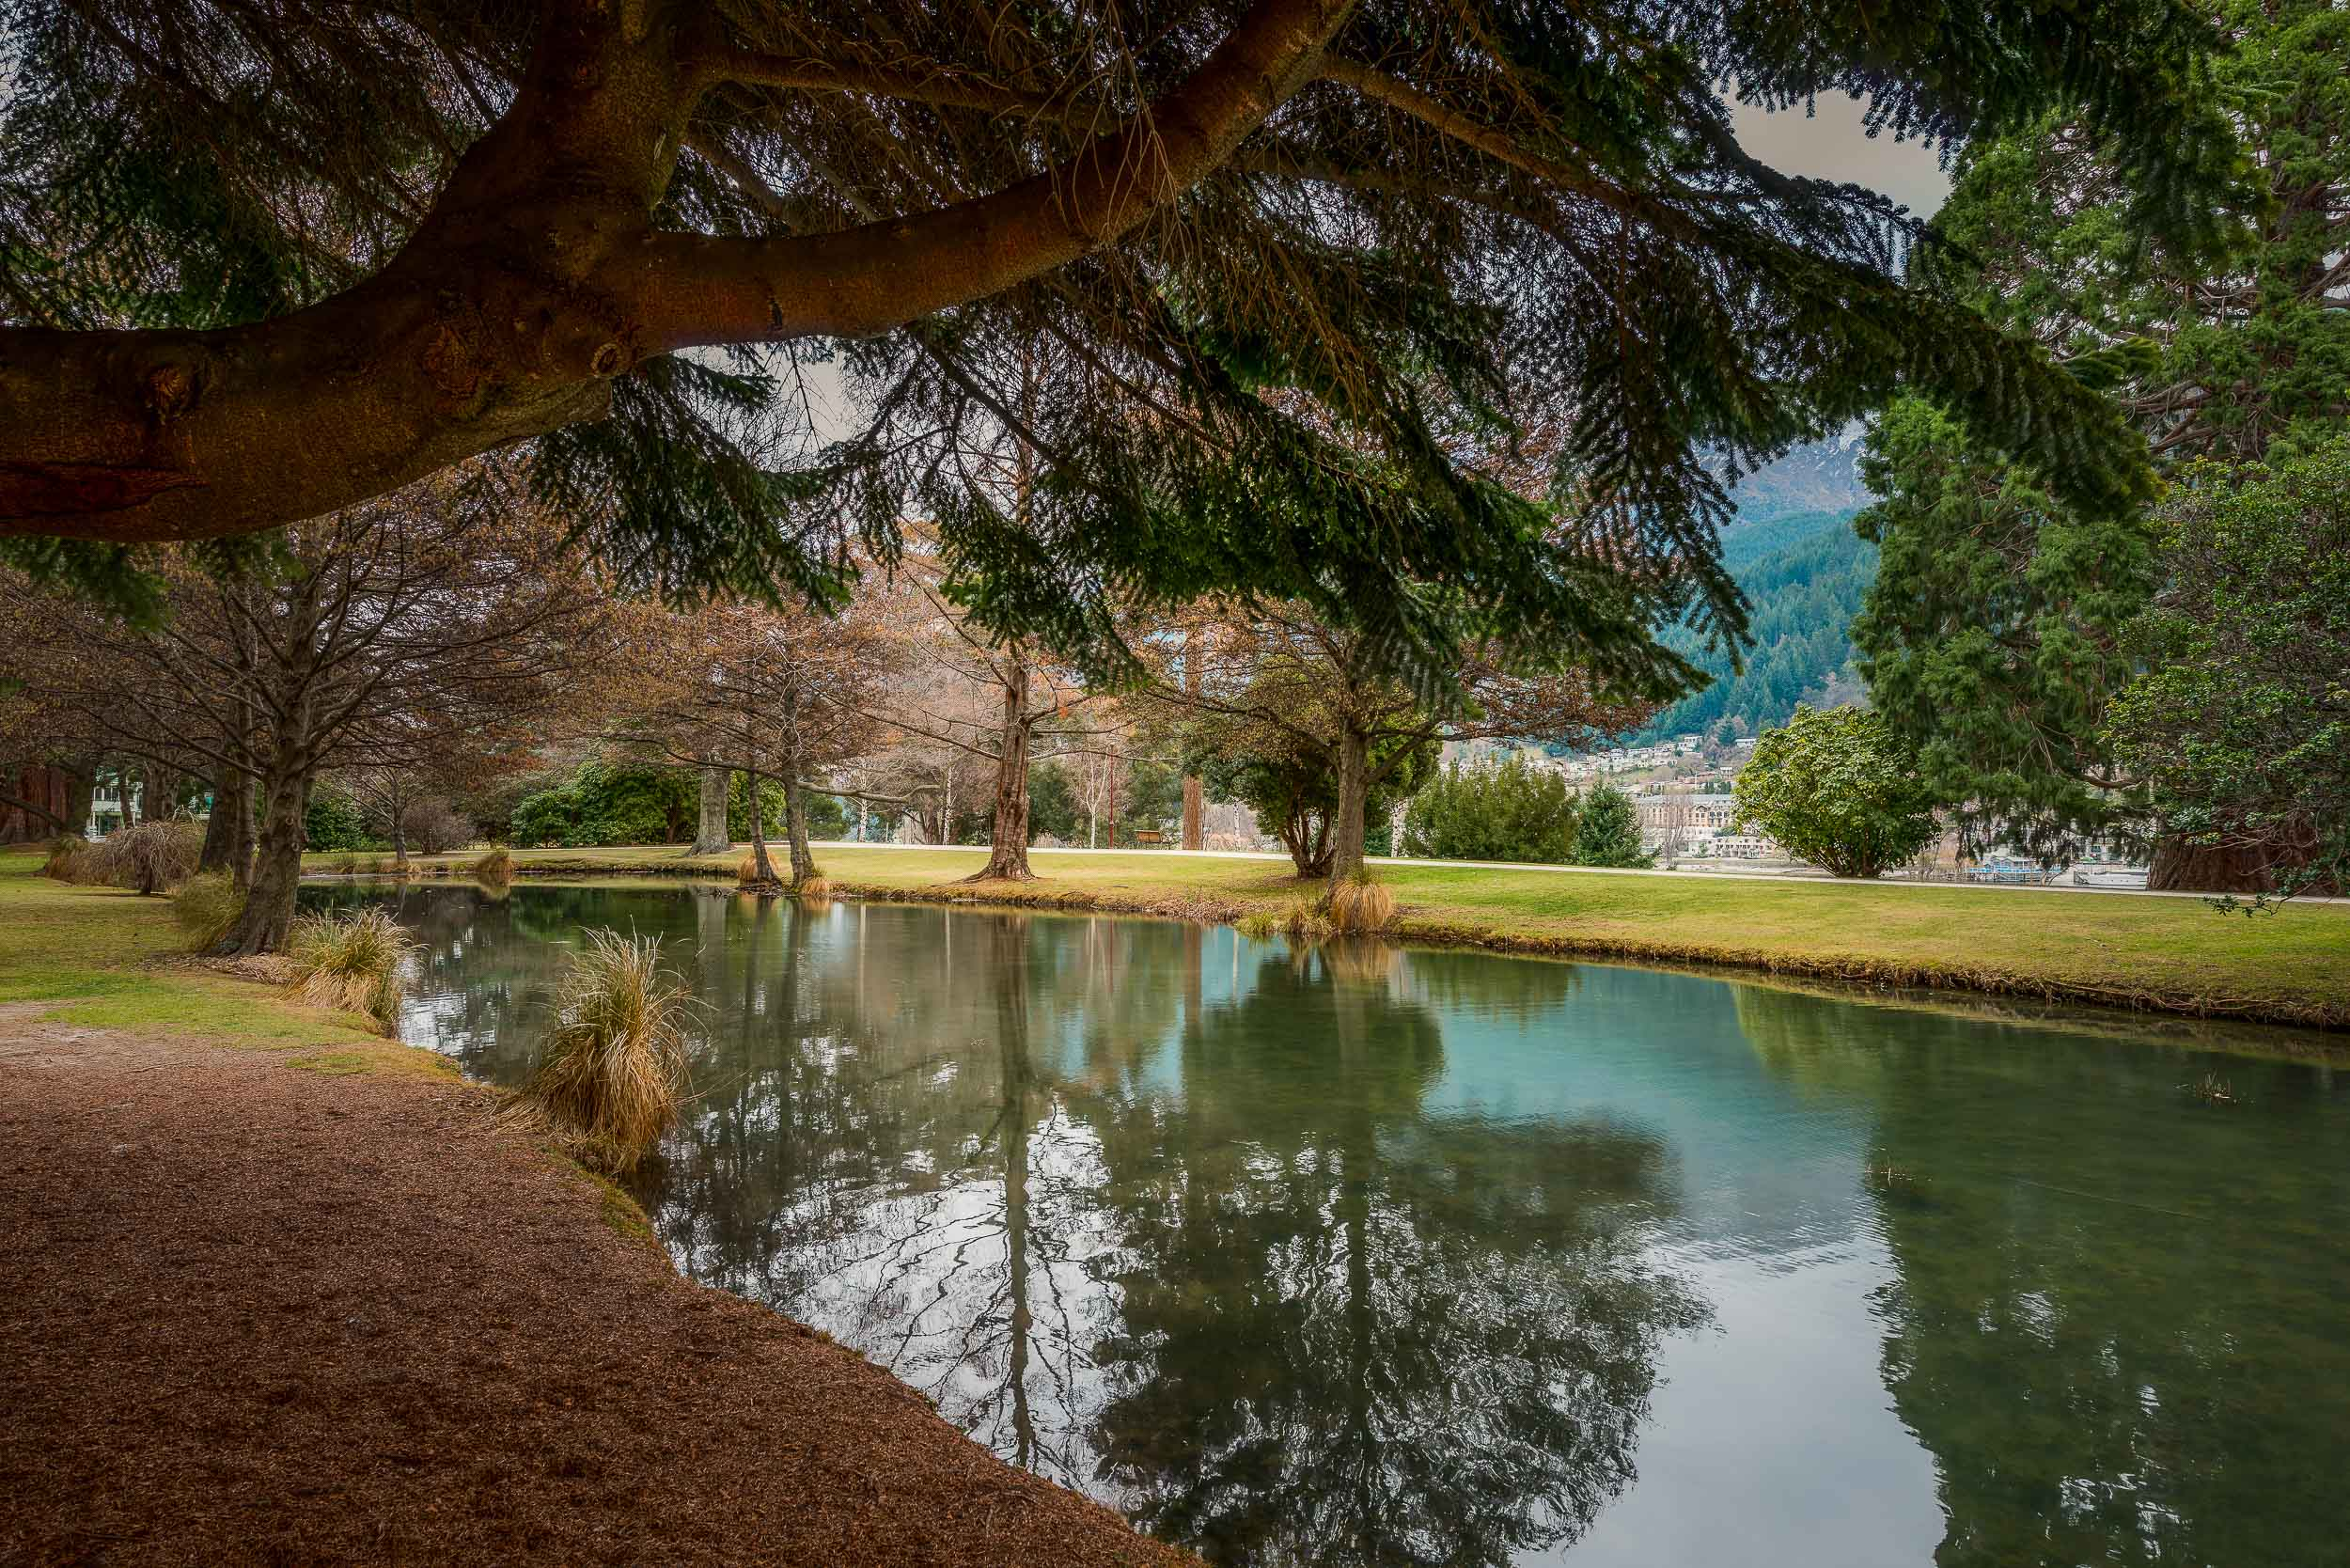 A    picturesque lake    framed by an overhanging tree at    Queenstown Gardens    in the city of    Queenstown, New Zealand   .